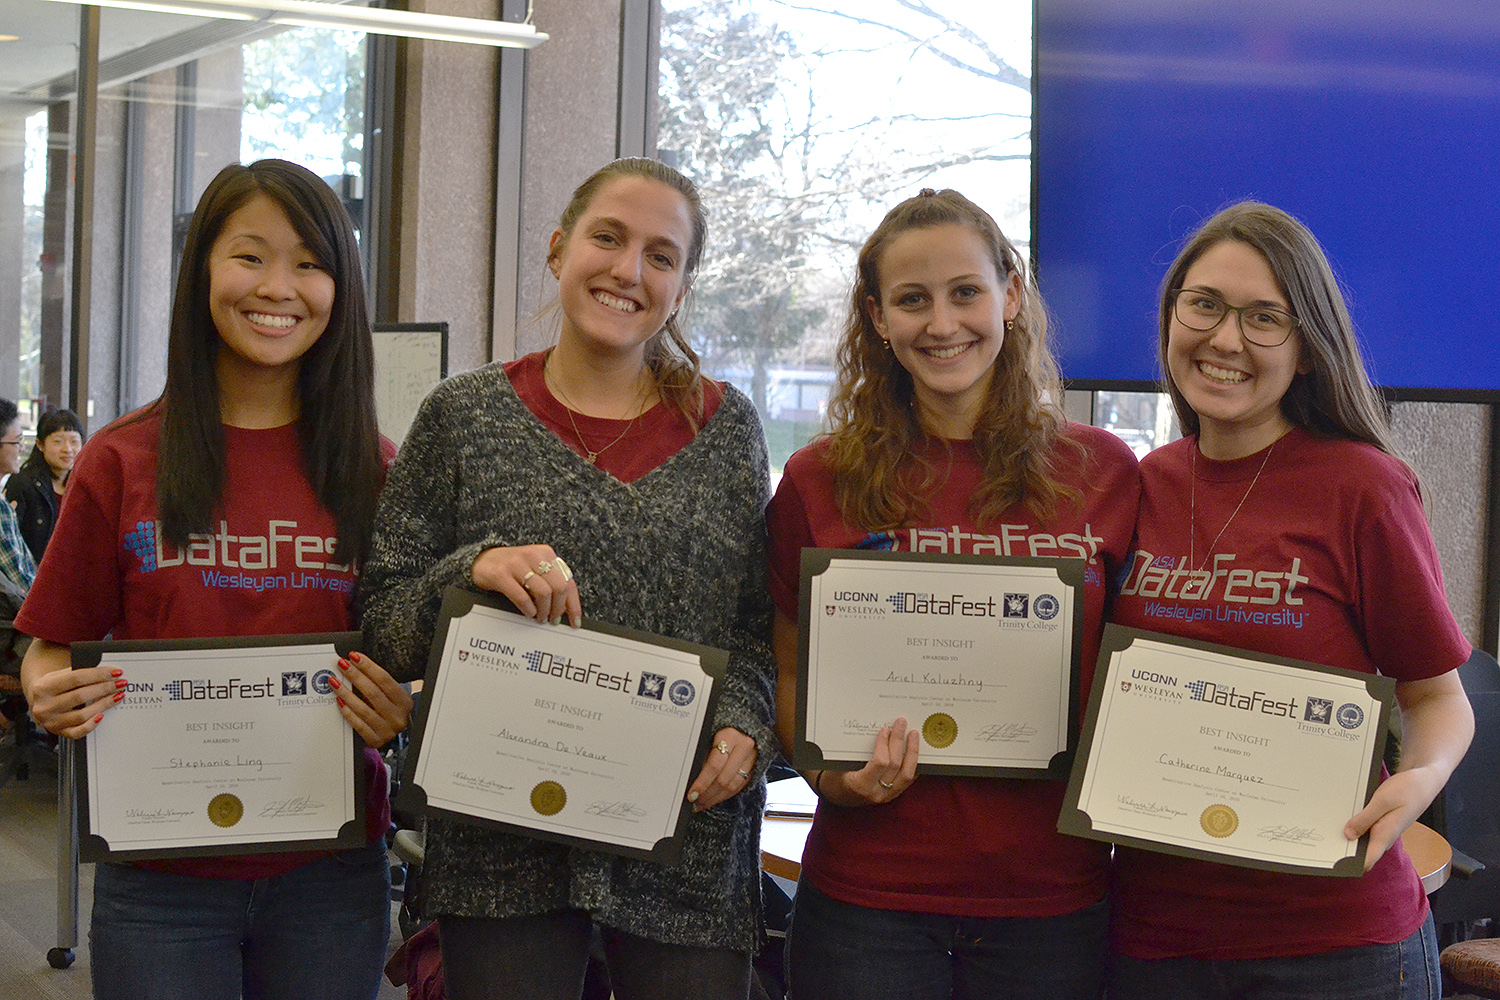 "The Wesleyan team QACs FOR LIFE was honored for ""Best Insight."" Teammates included Stephanie Ling '16, Alexandra De Veaux '17, Ariel Kaluzhny '16 and Catherine Marquez '16."